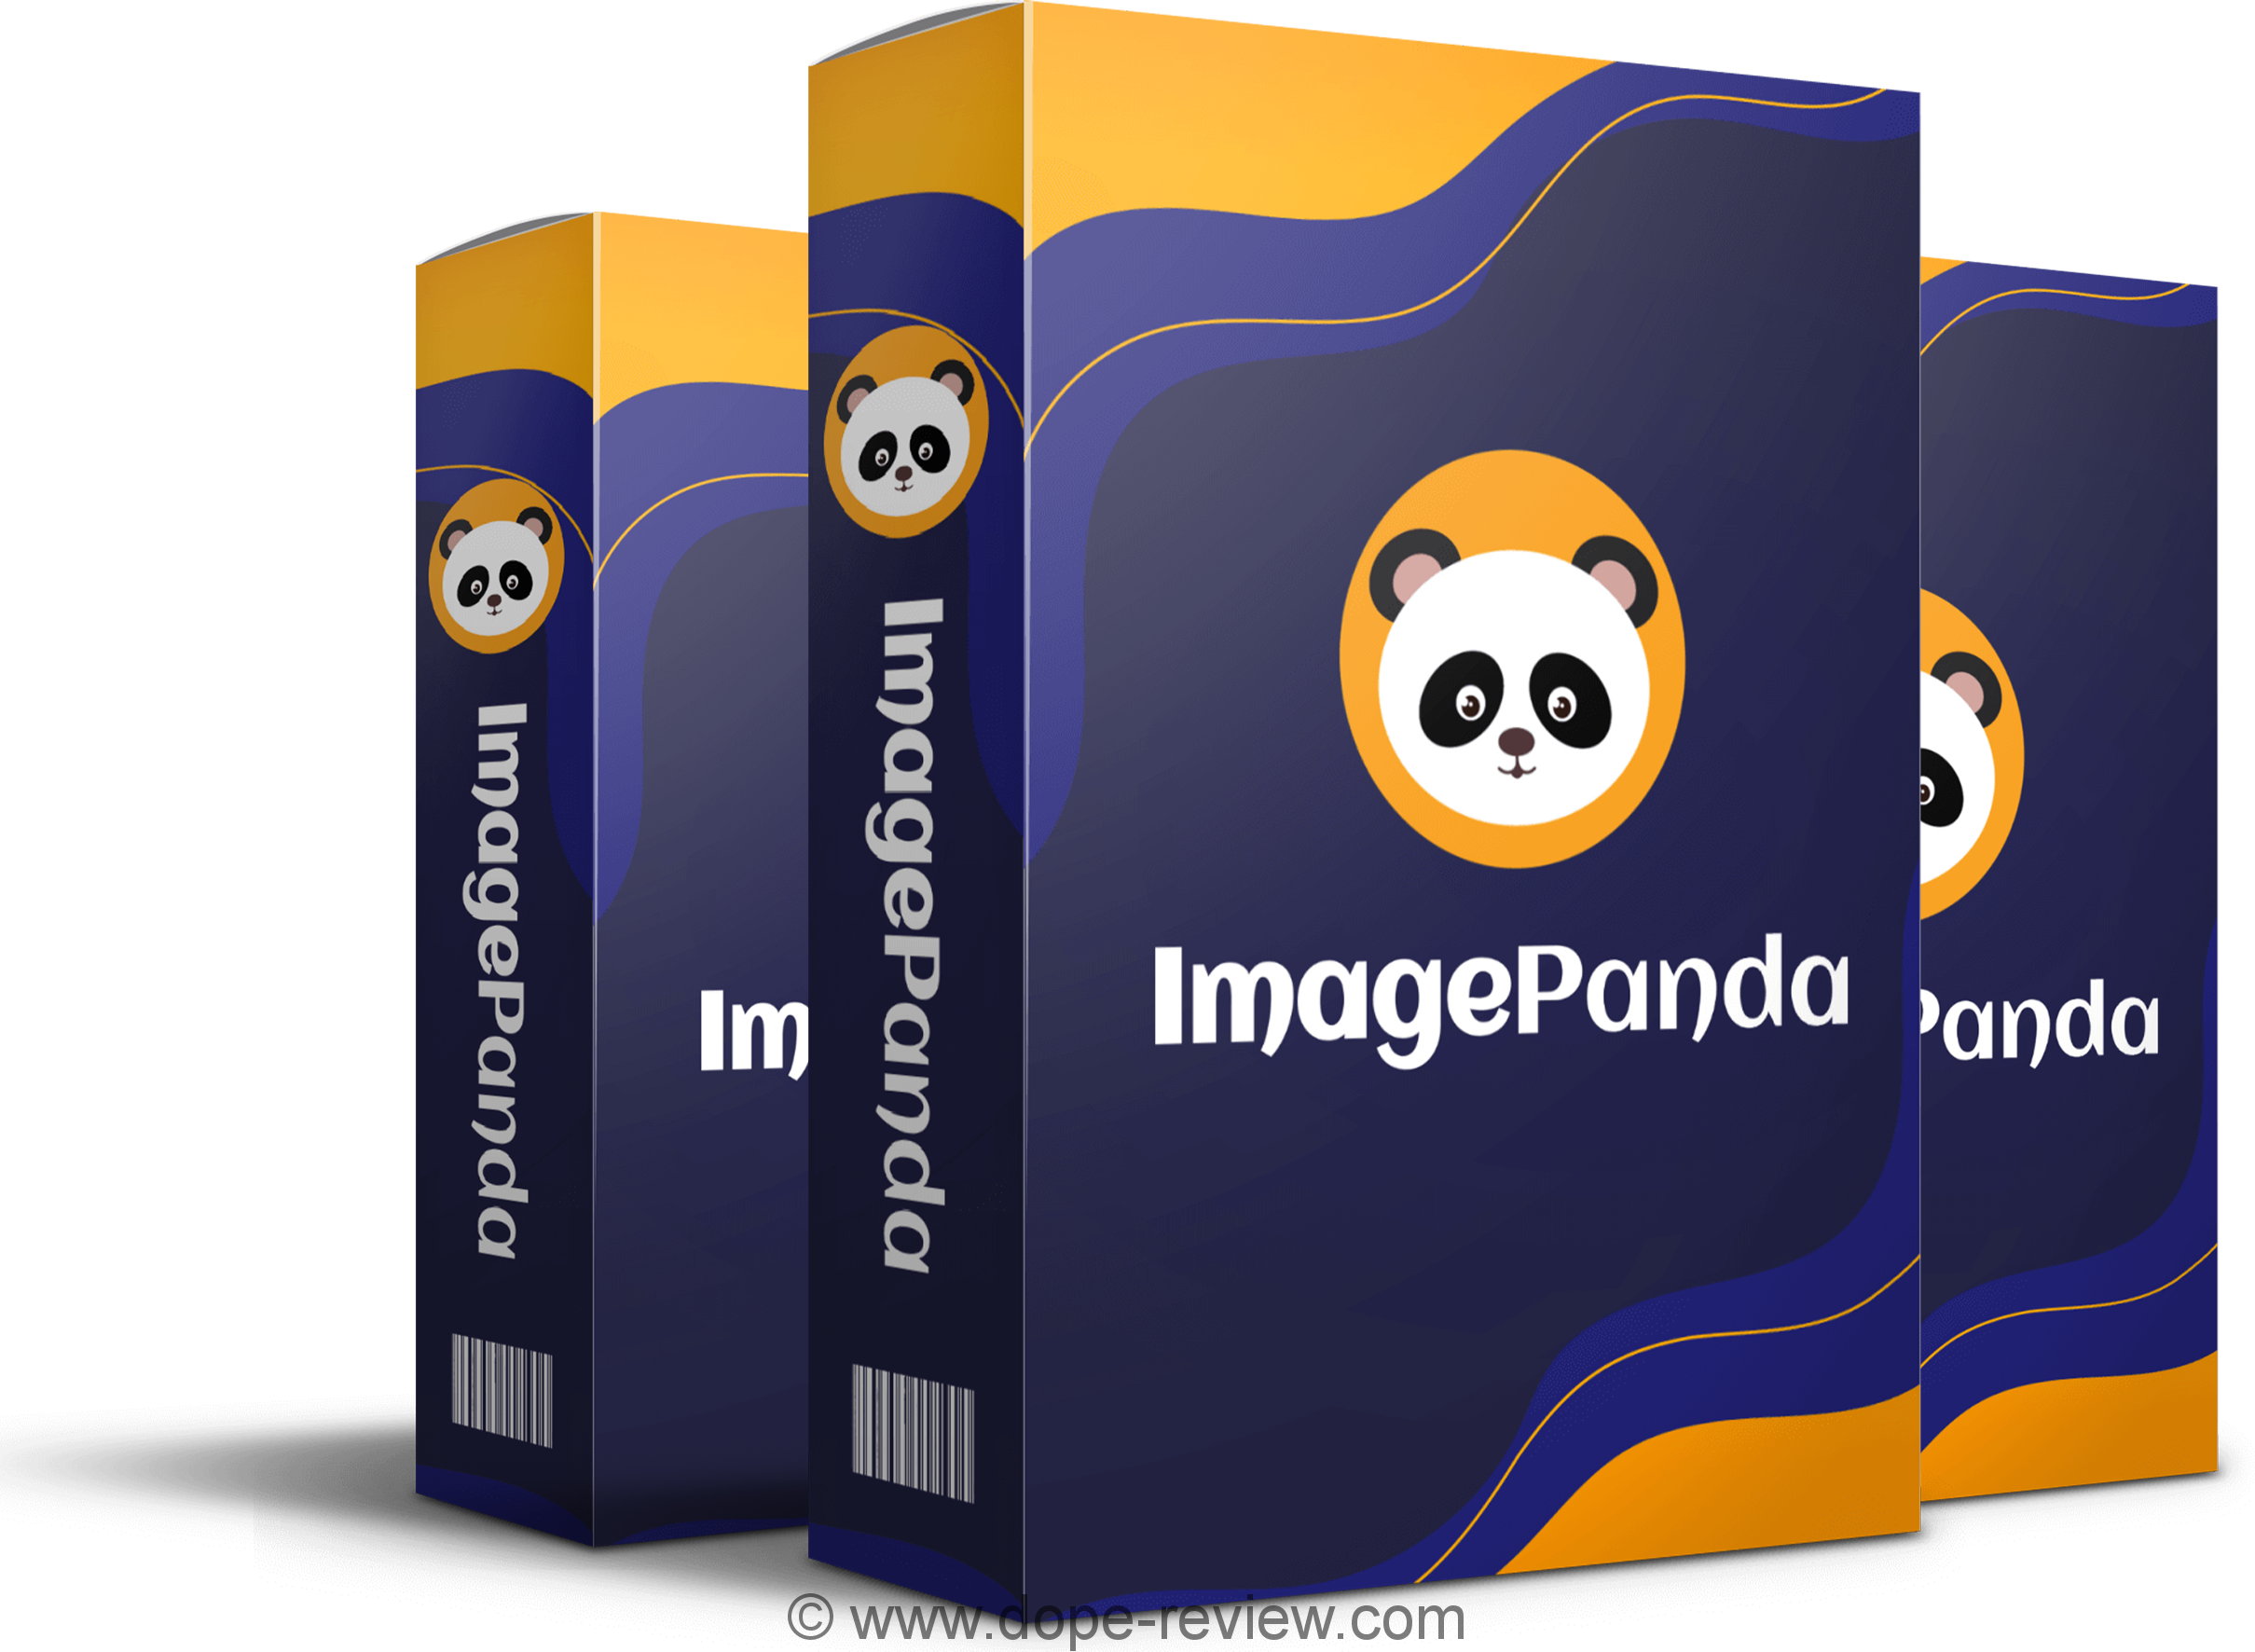 ImagePanda Review